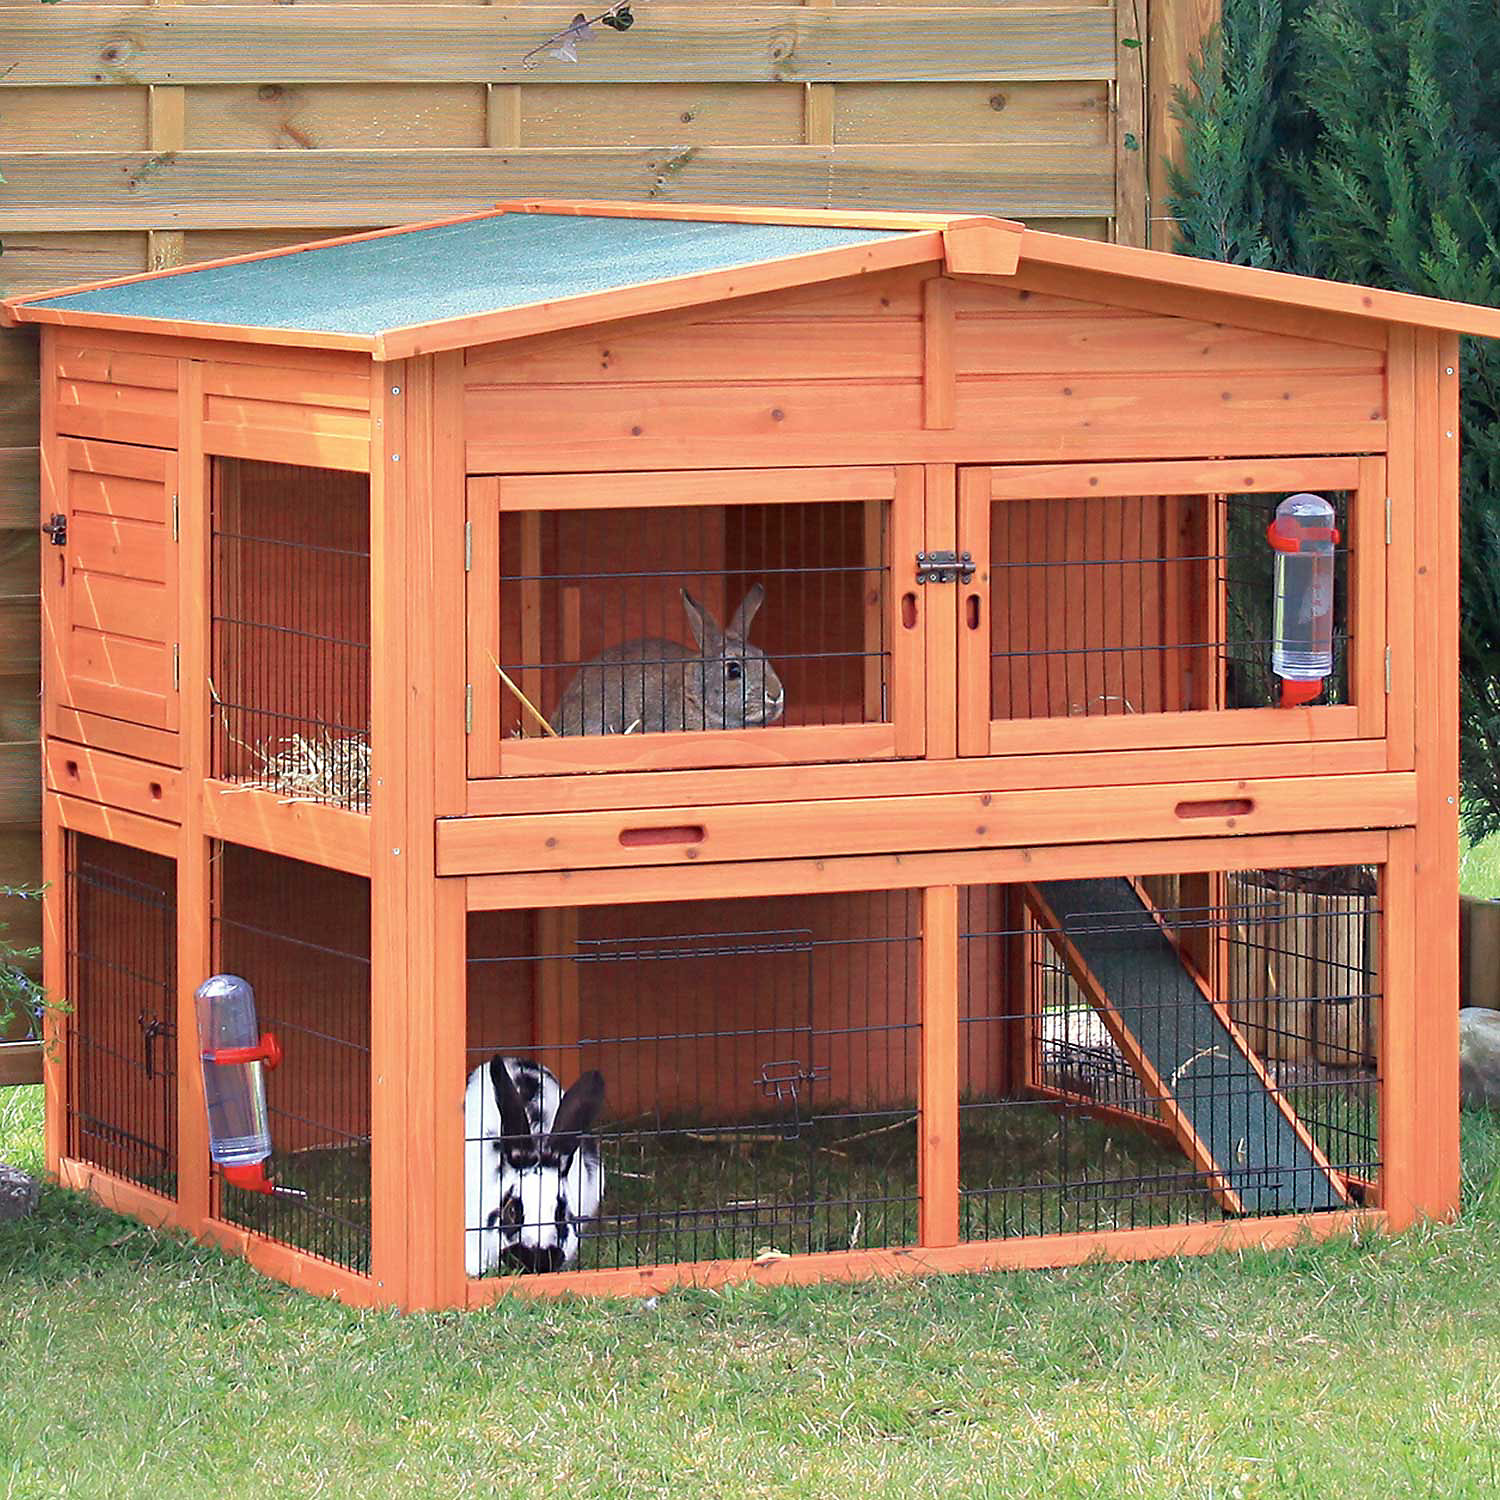 Trixie Natura Xl Two Story Rabbit Hutch With Outdoor Run 53 L X 45 W X 44 H X Large Brown